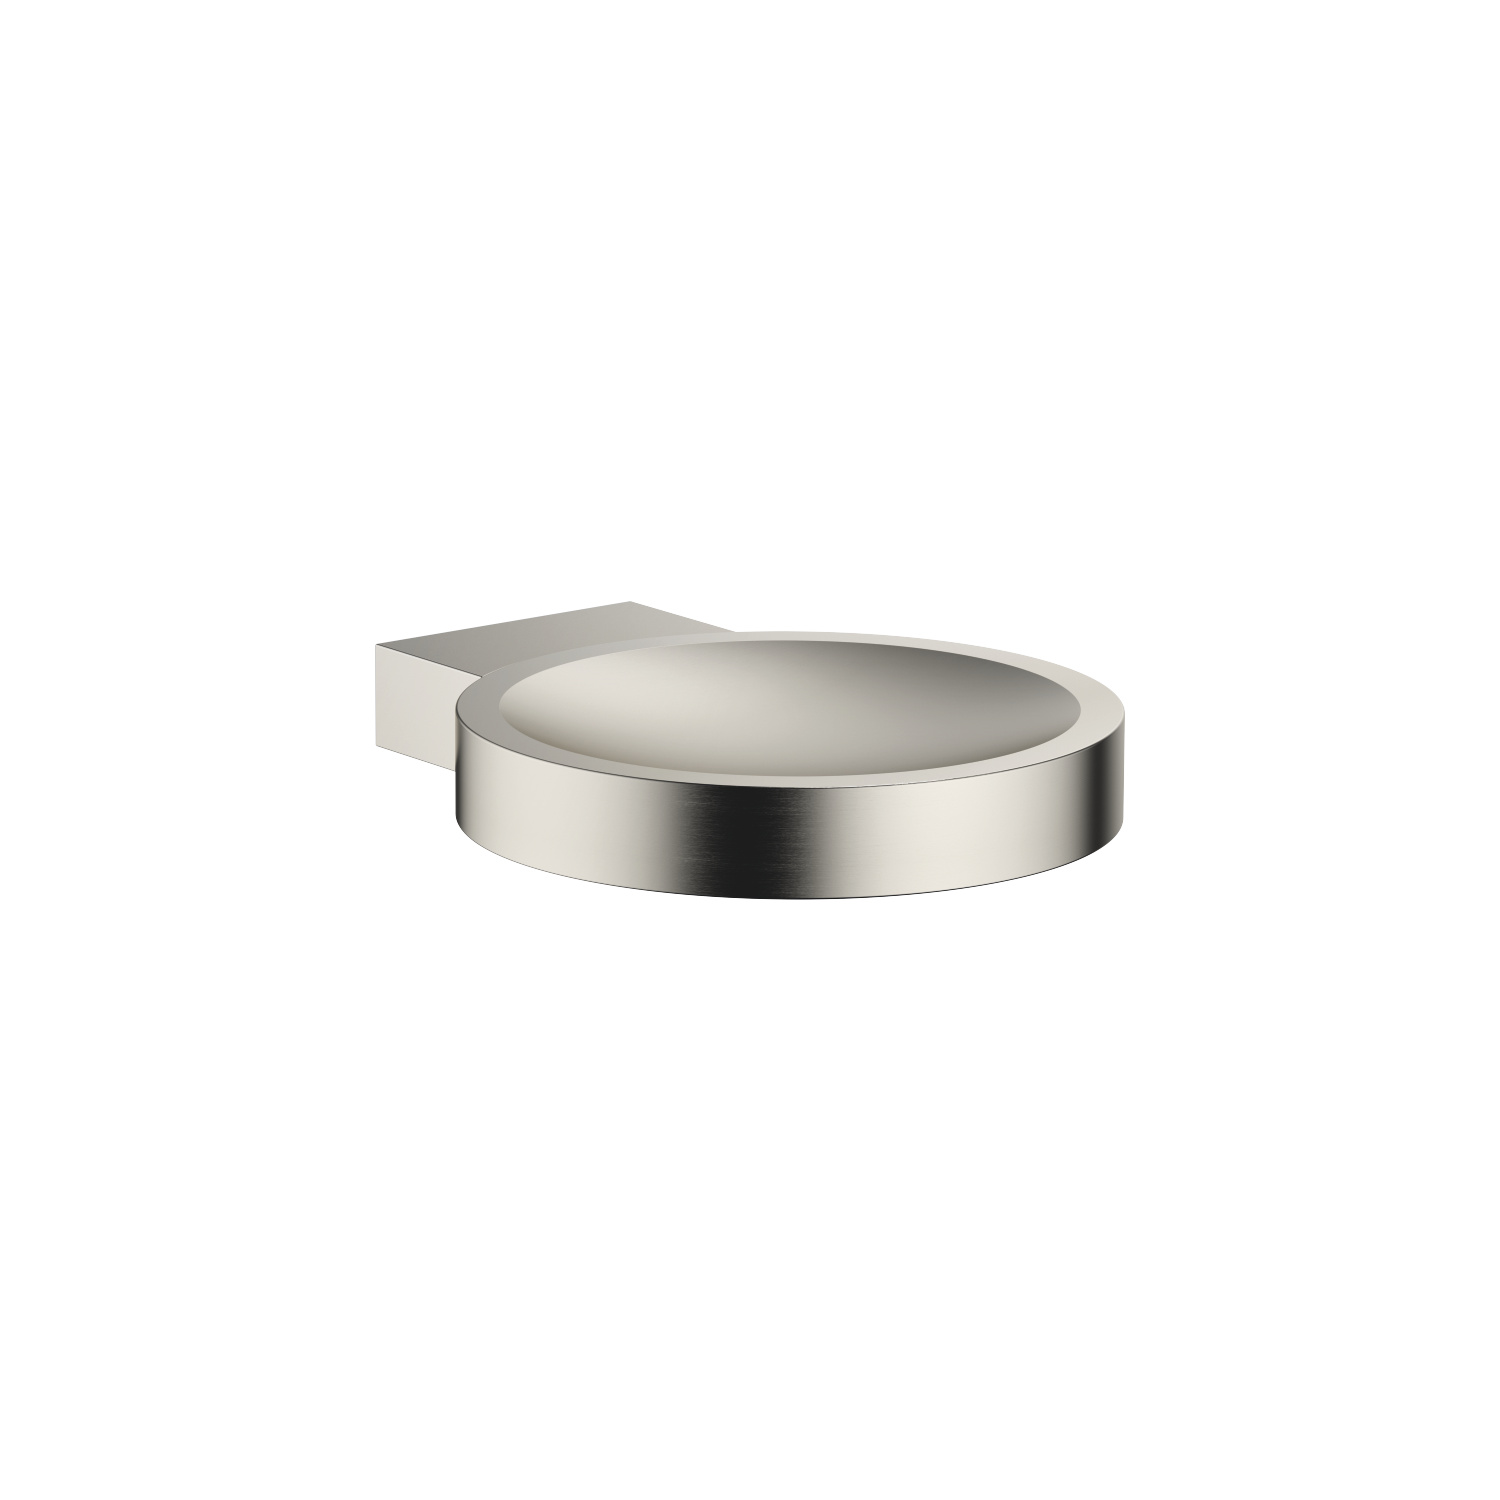 Soap dish wall-mounted - platinum matte